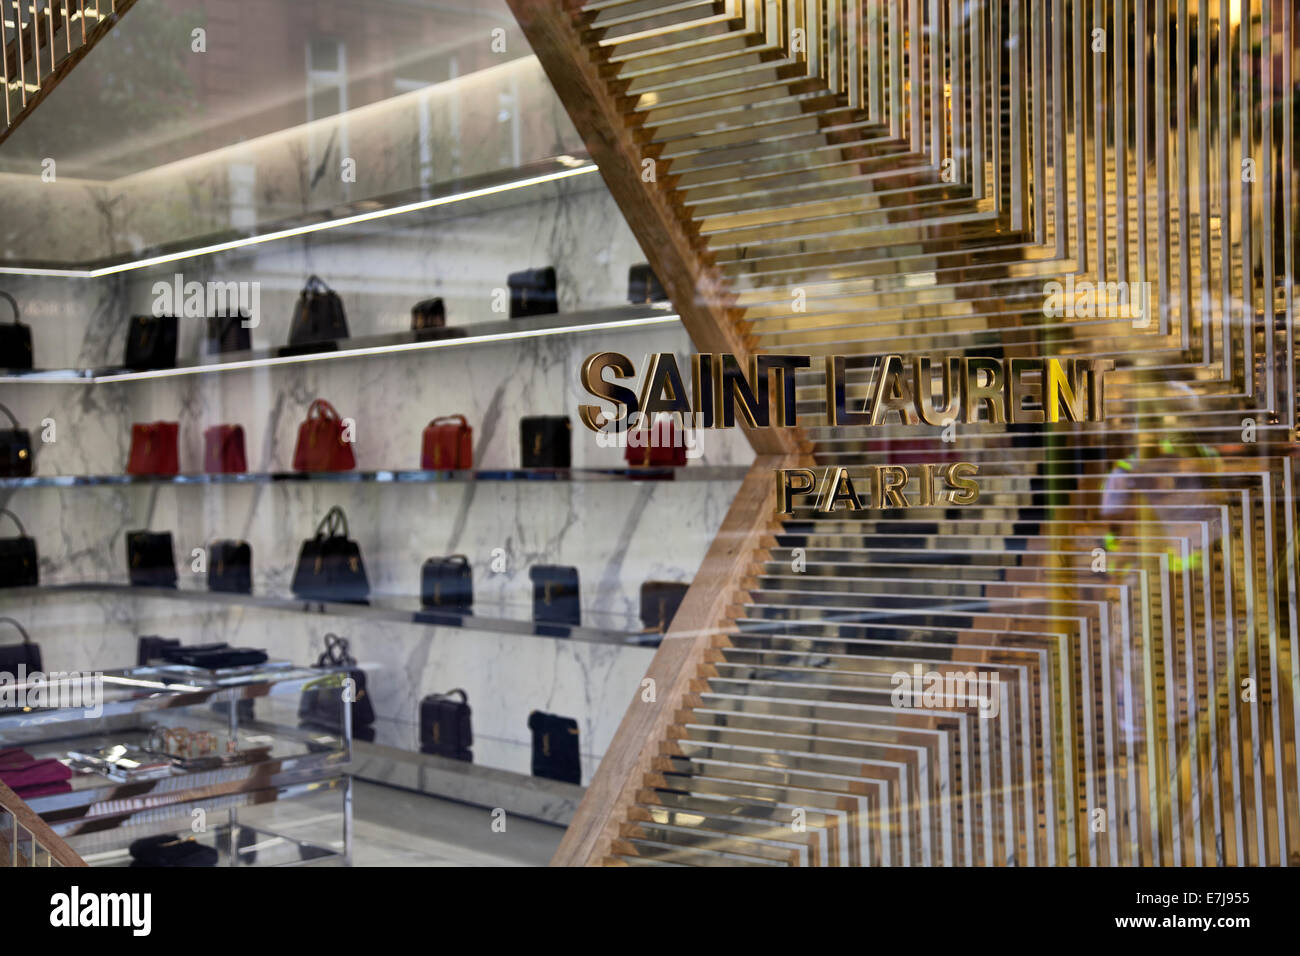 56dbba4207e82 Saint Laurent Store on Sloane Street in Knightsbridge - London UK - Stock  Image